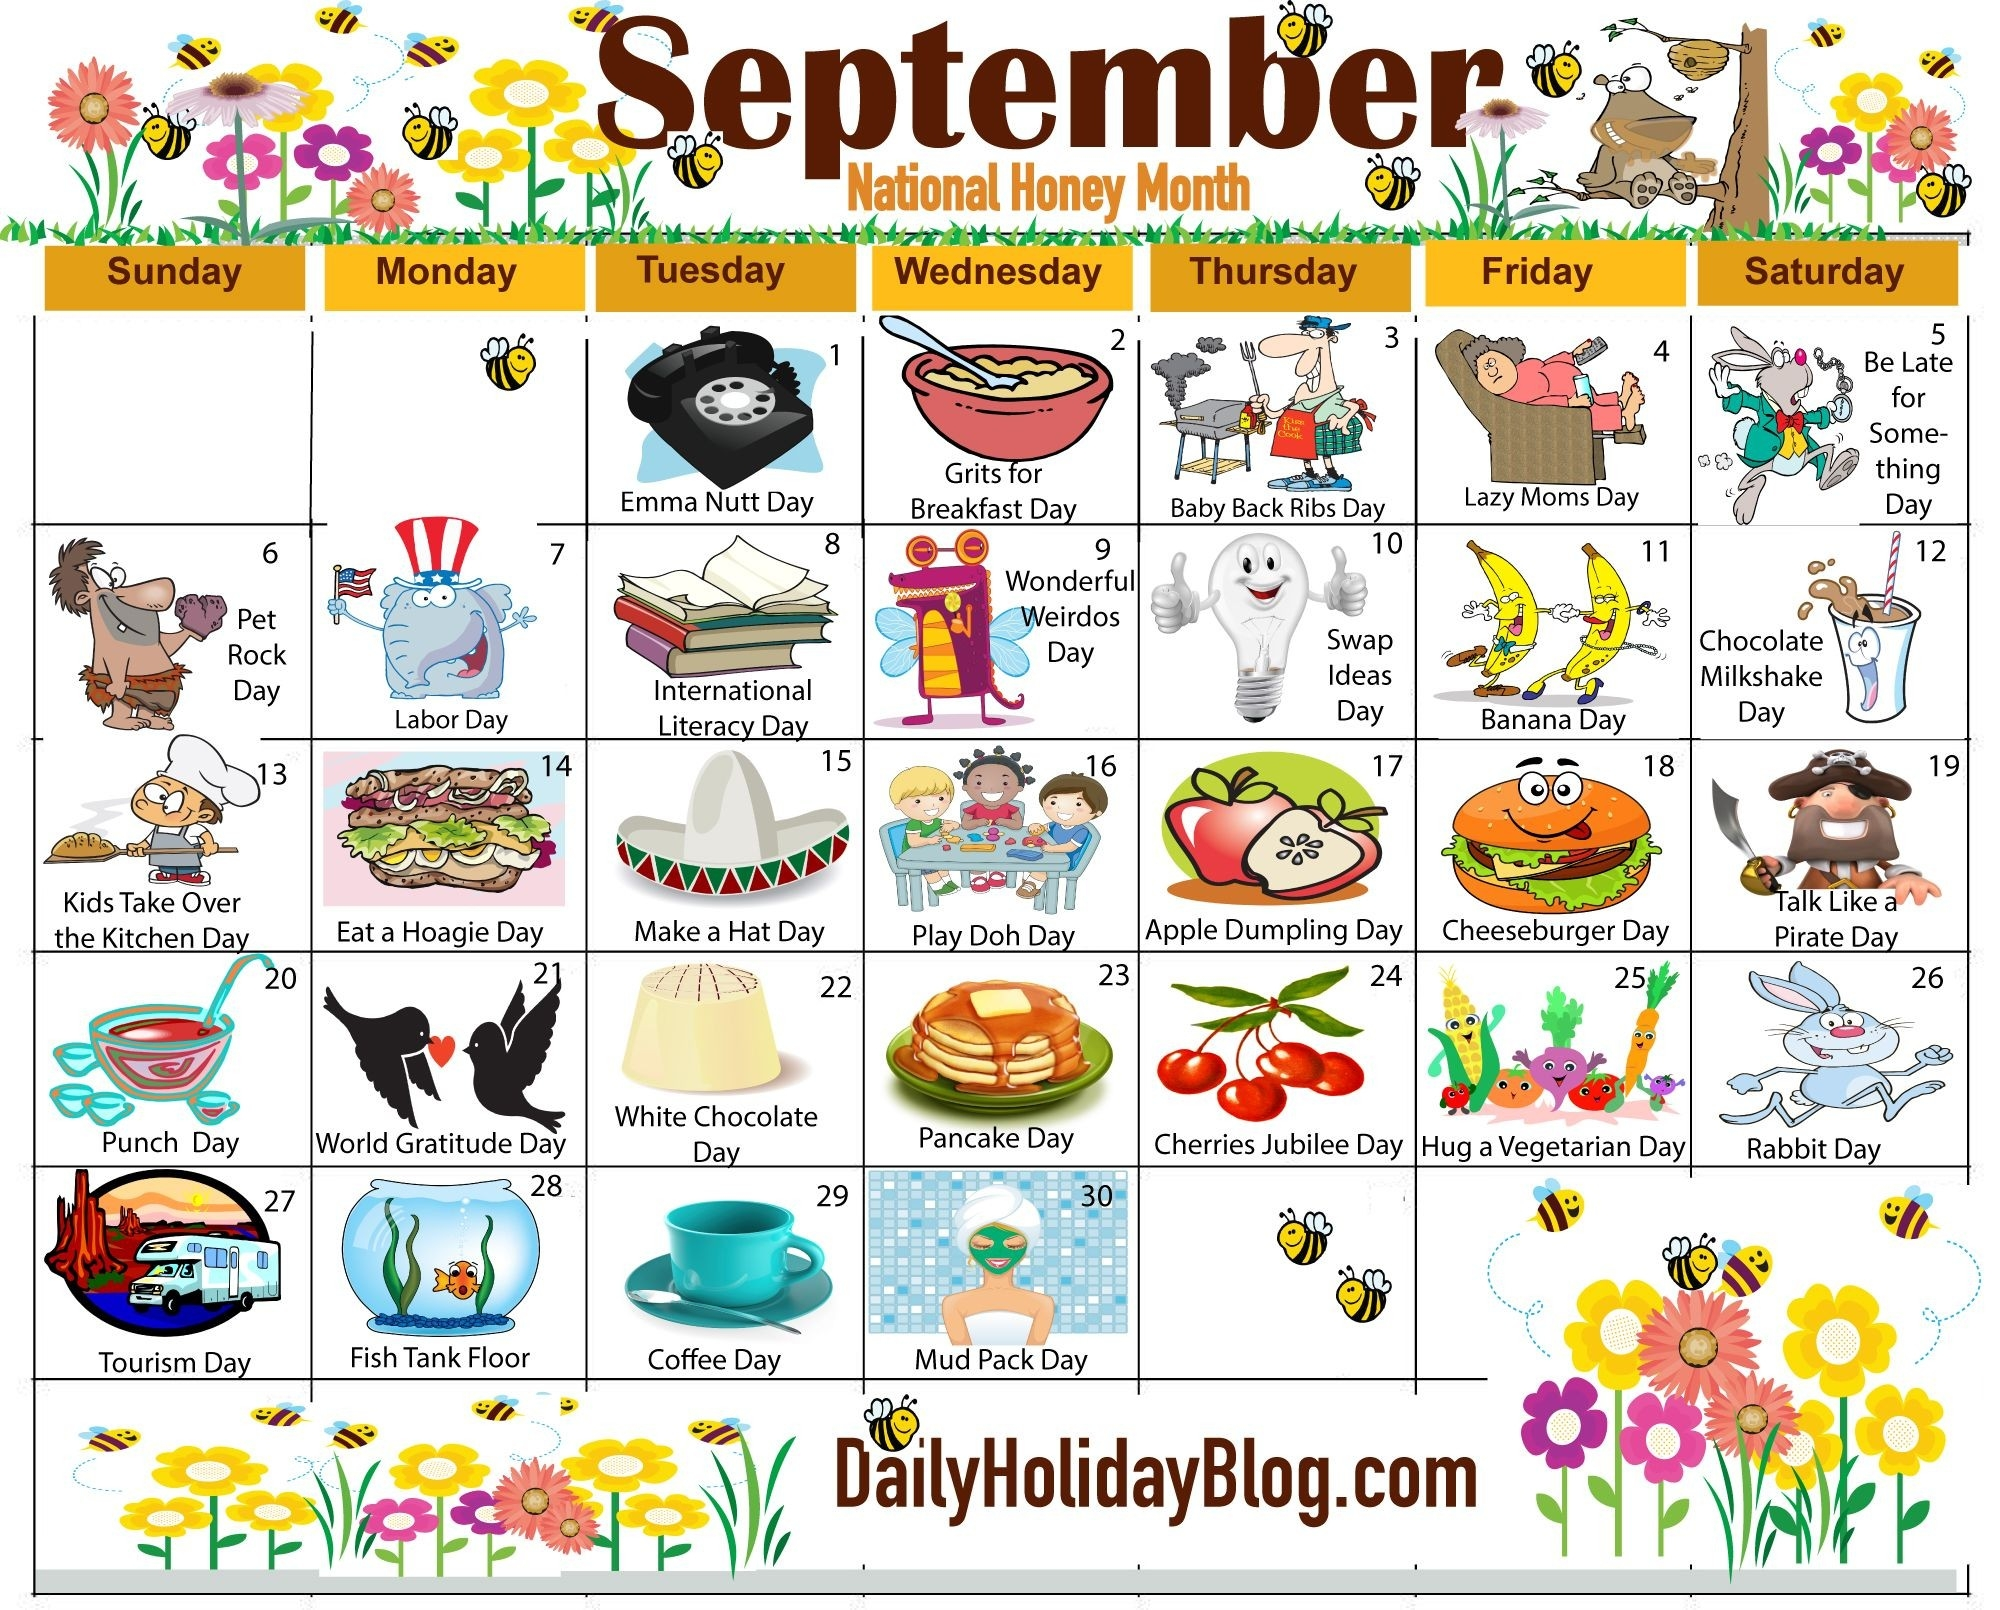 The New Free September Holiday Calendar Is Available To-September 2020 Daily Holidays Special And Wacky Days